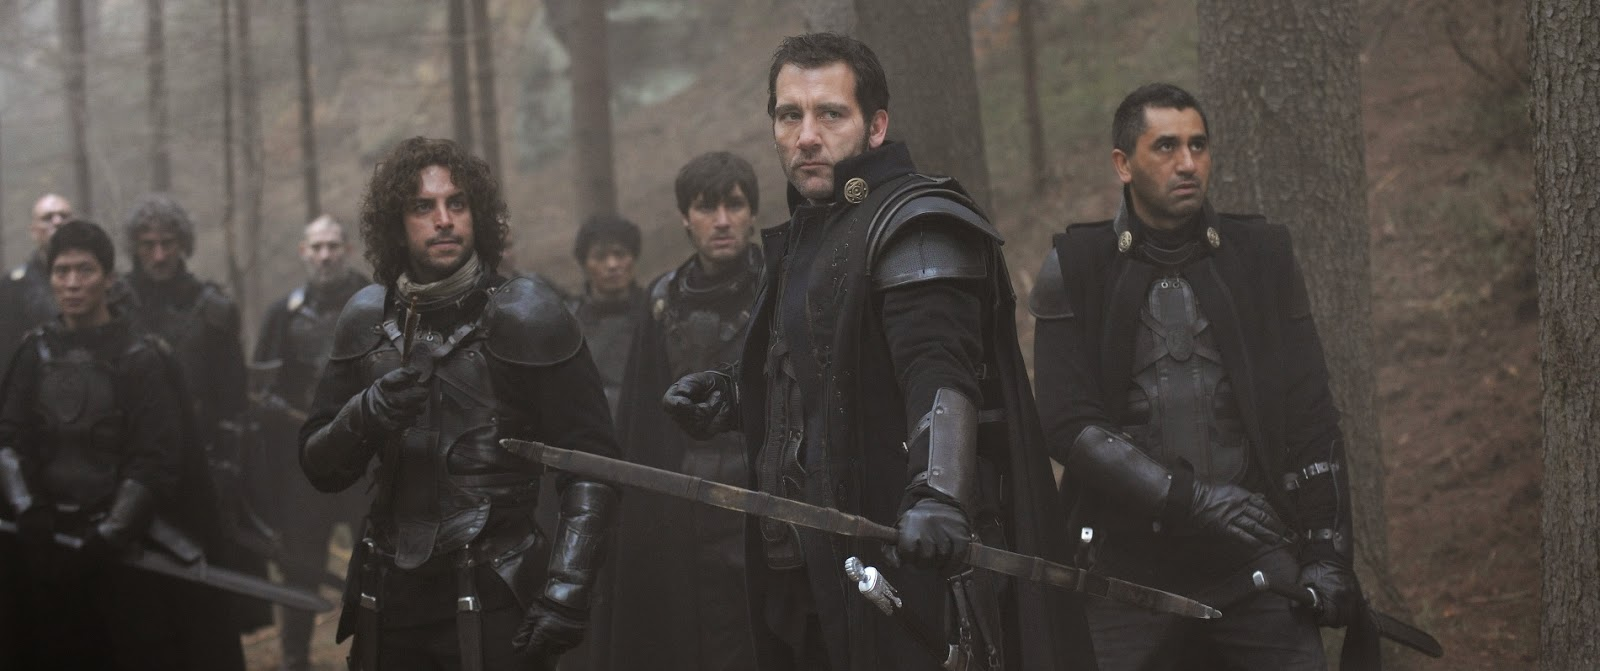 THE LAST KNIGHTS-Official Poster Banner PROMO PHOTOS-05AGOSTO2014-04